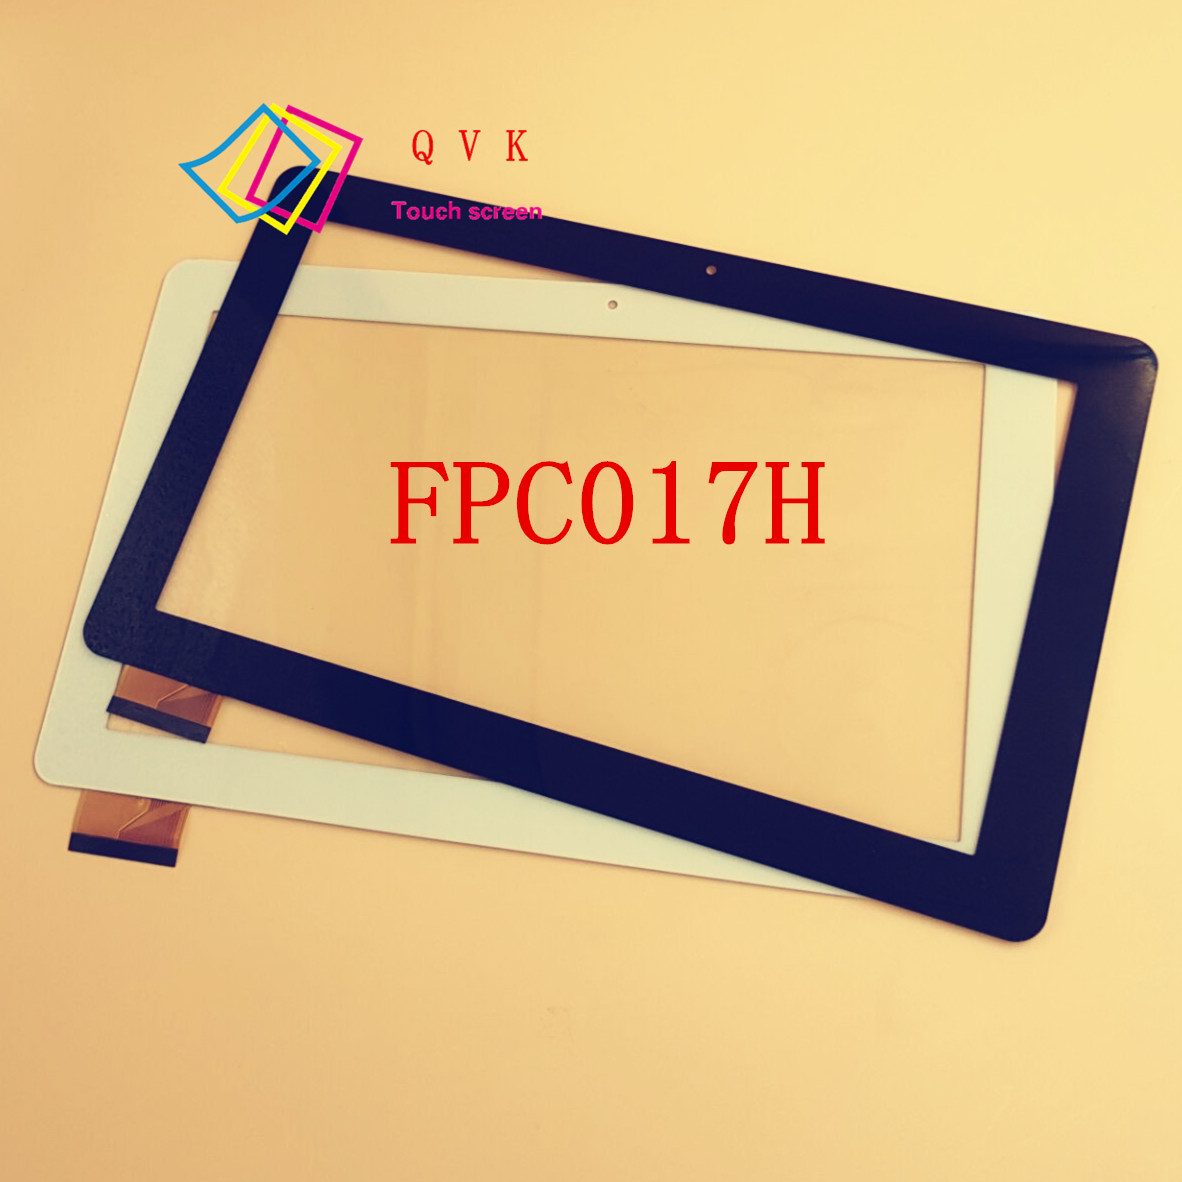 5pcS 10.1 inch tablet pc touch screen Fpc017H V2.0 HC261159A1 MB1019Q5 external screen5pcS 10.1 inch tablet pc touch screen Fpc017H V2.0 HC261159A1 MB1019Q5 external screen